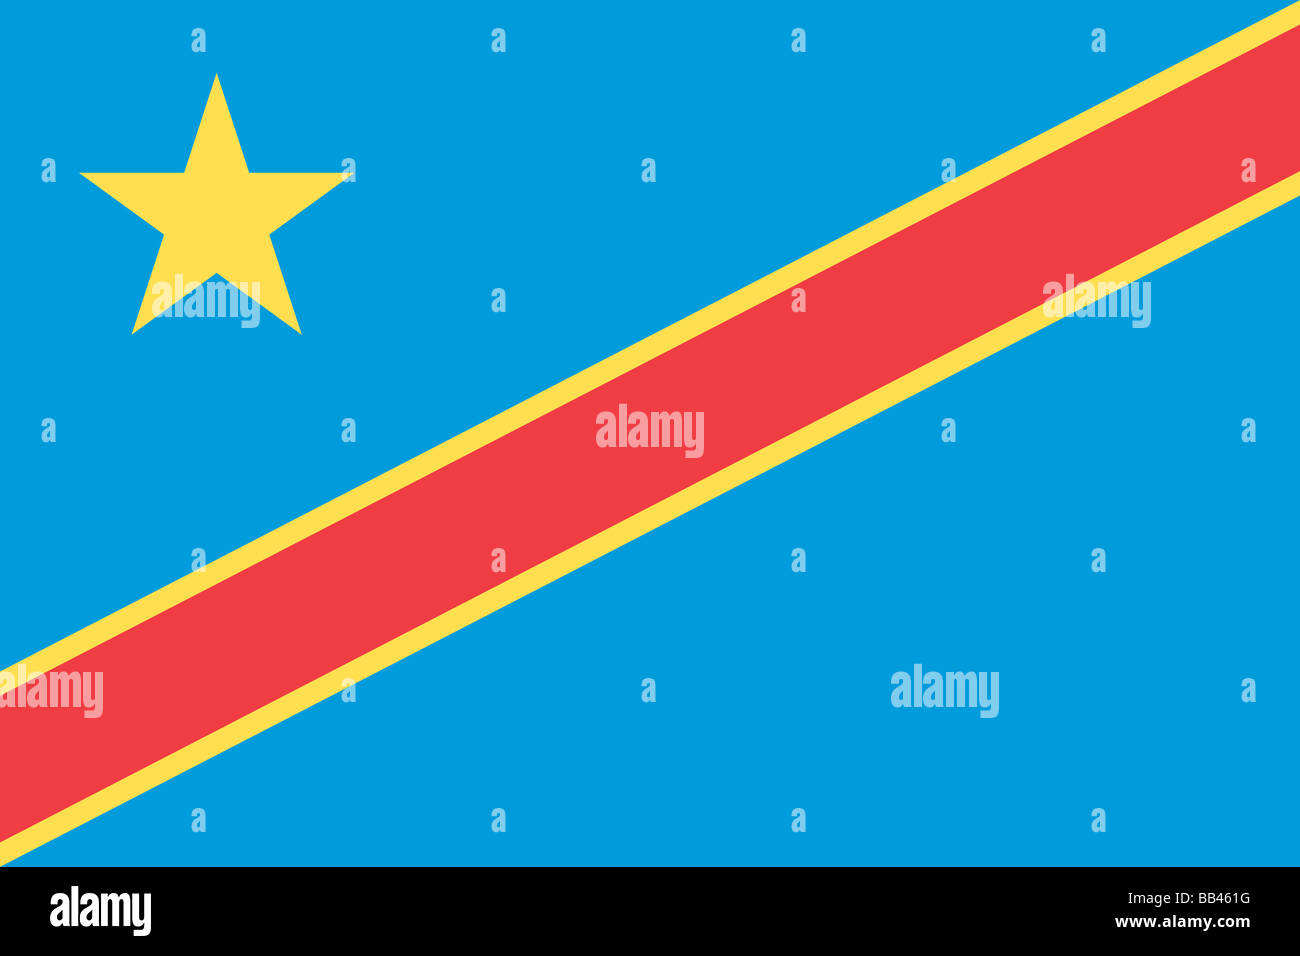 flag of the Democratic Republic of the Congo (formerly Zaire) - Stock Image